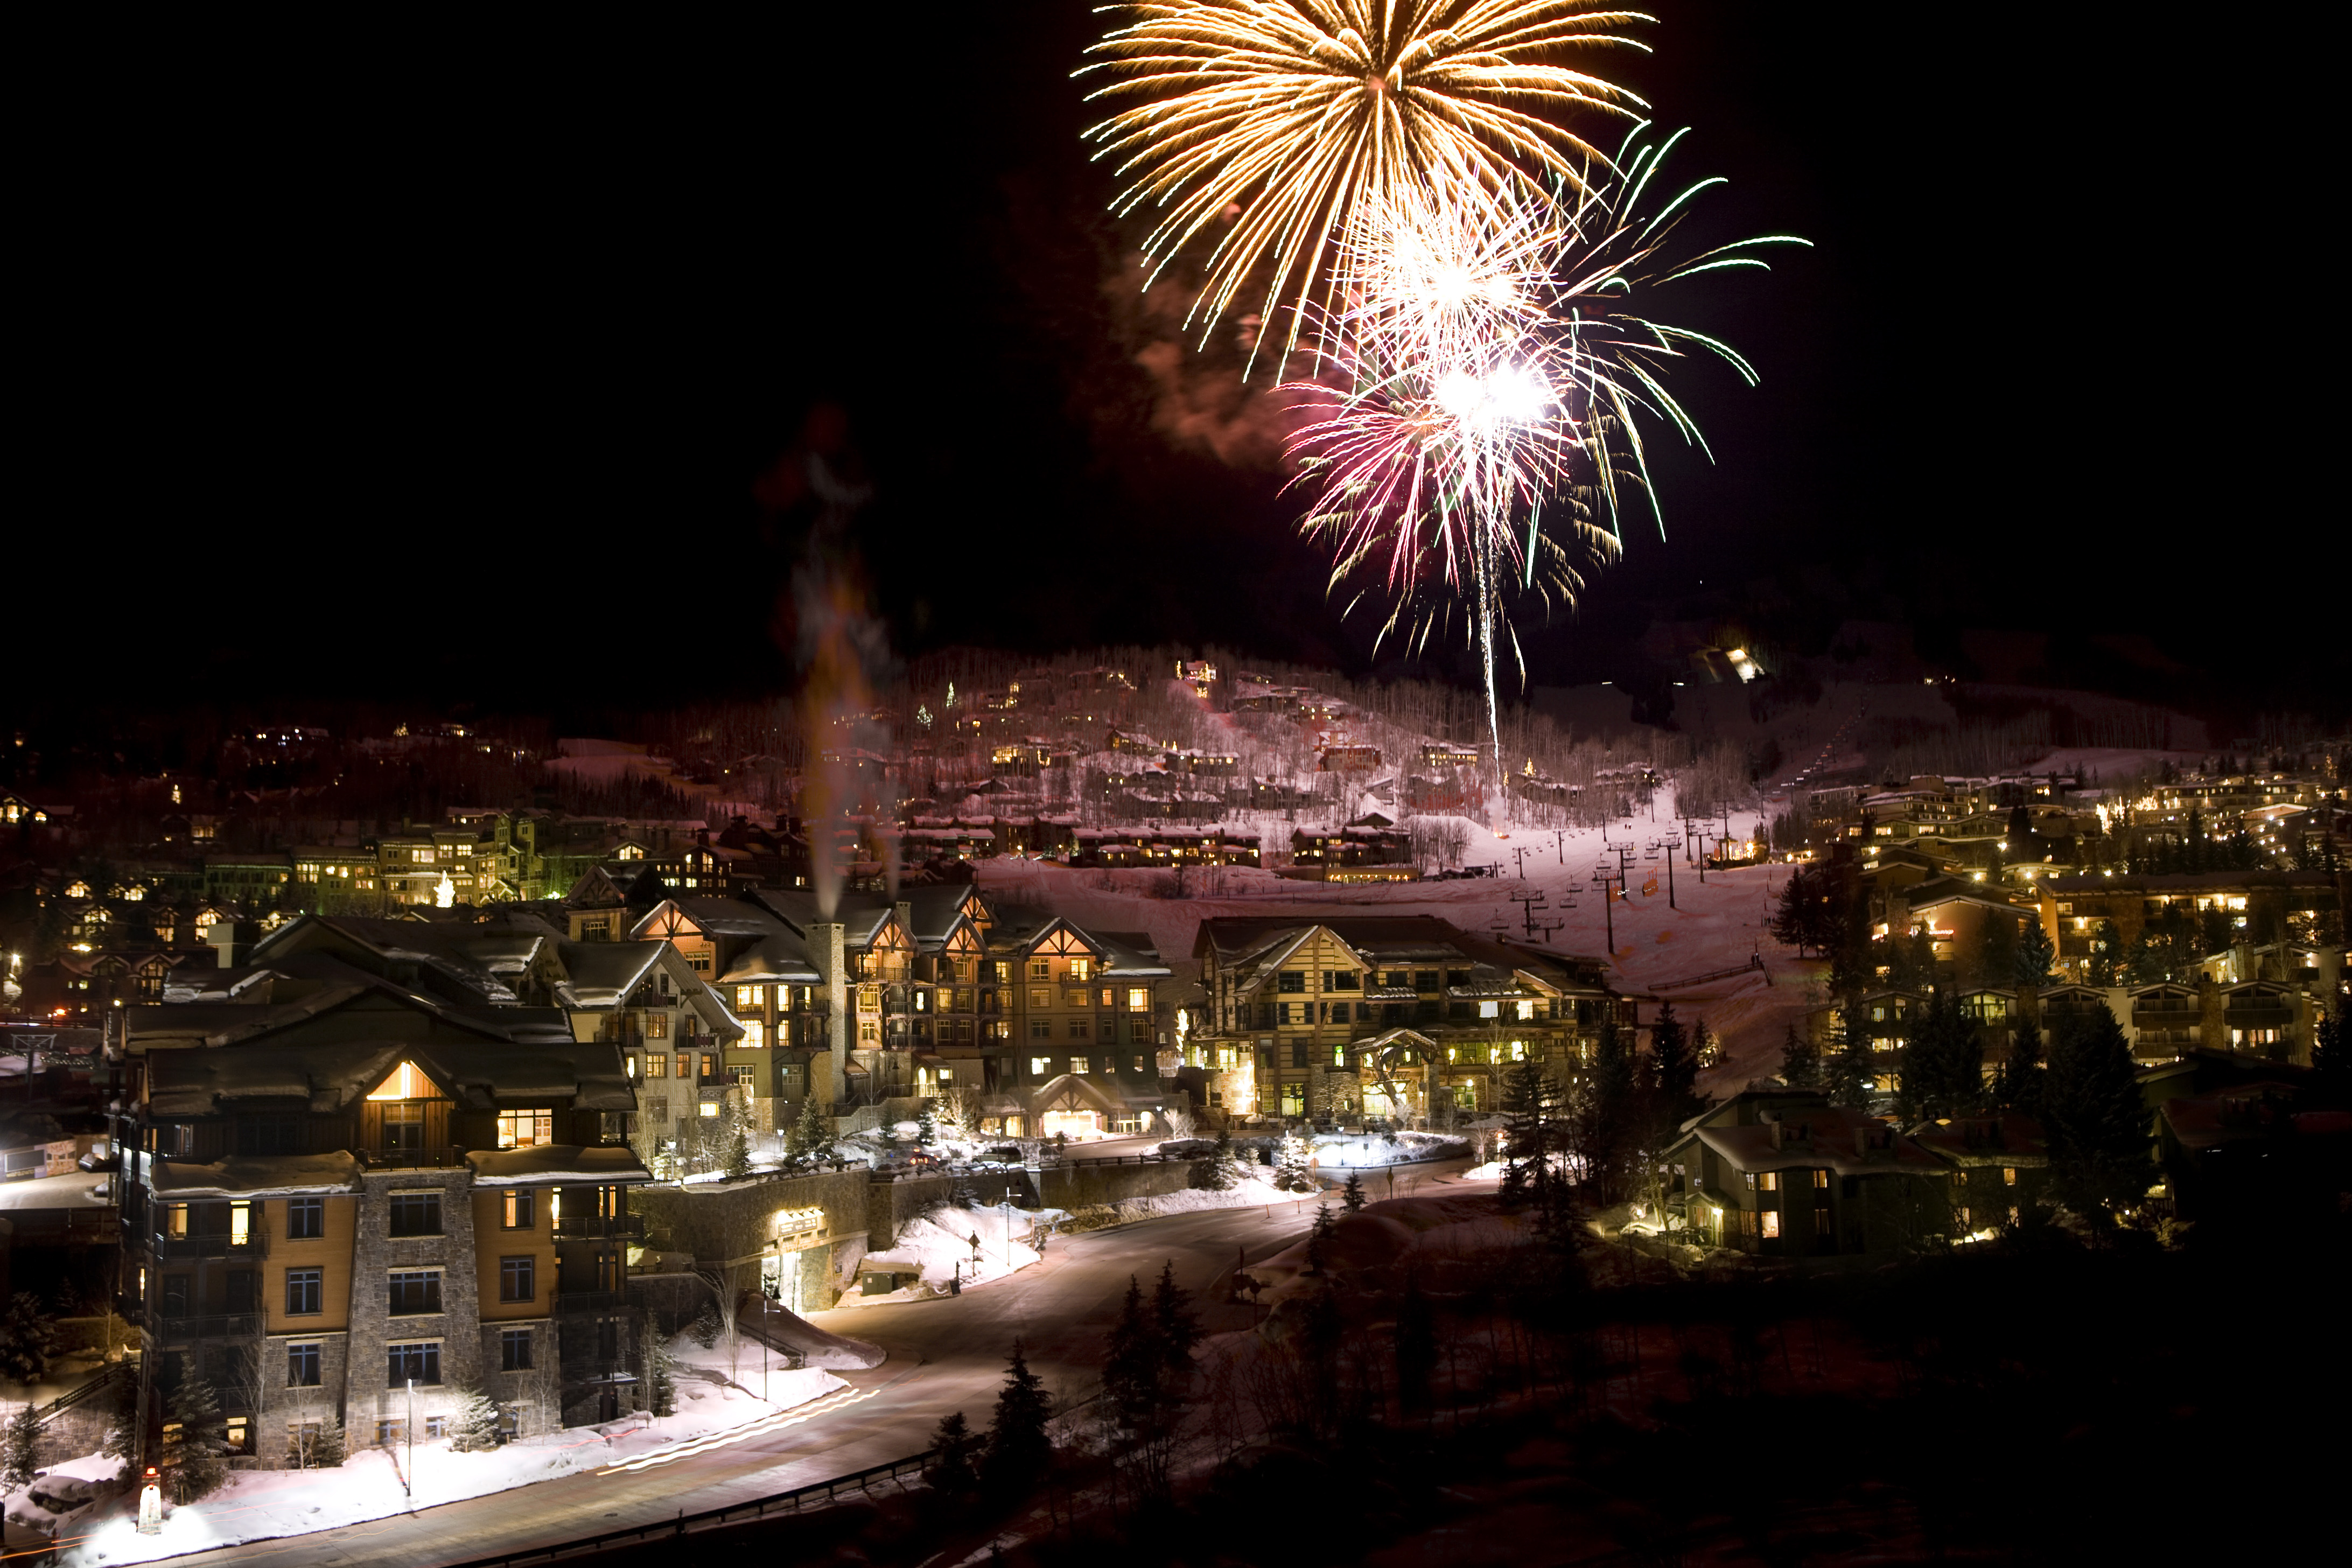 New Year's Eve fireworks in Snowmass Village